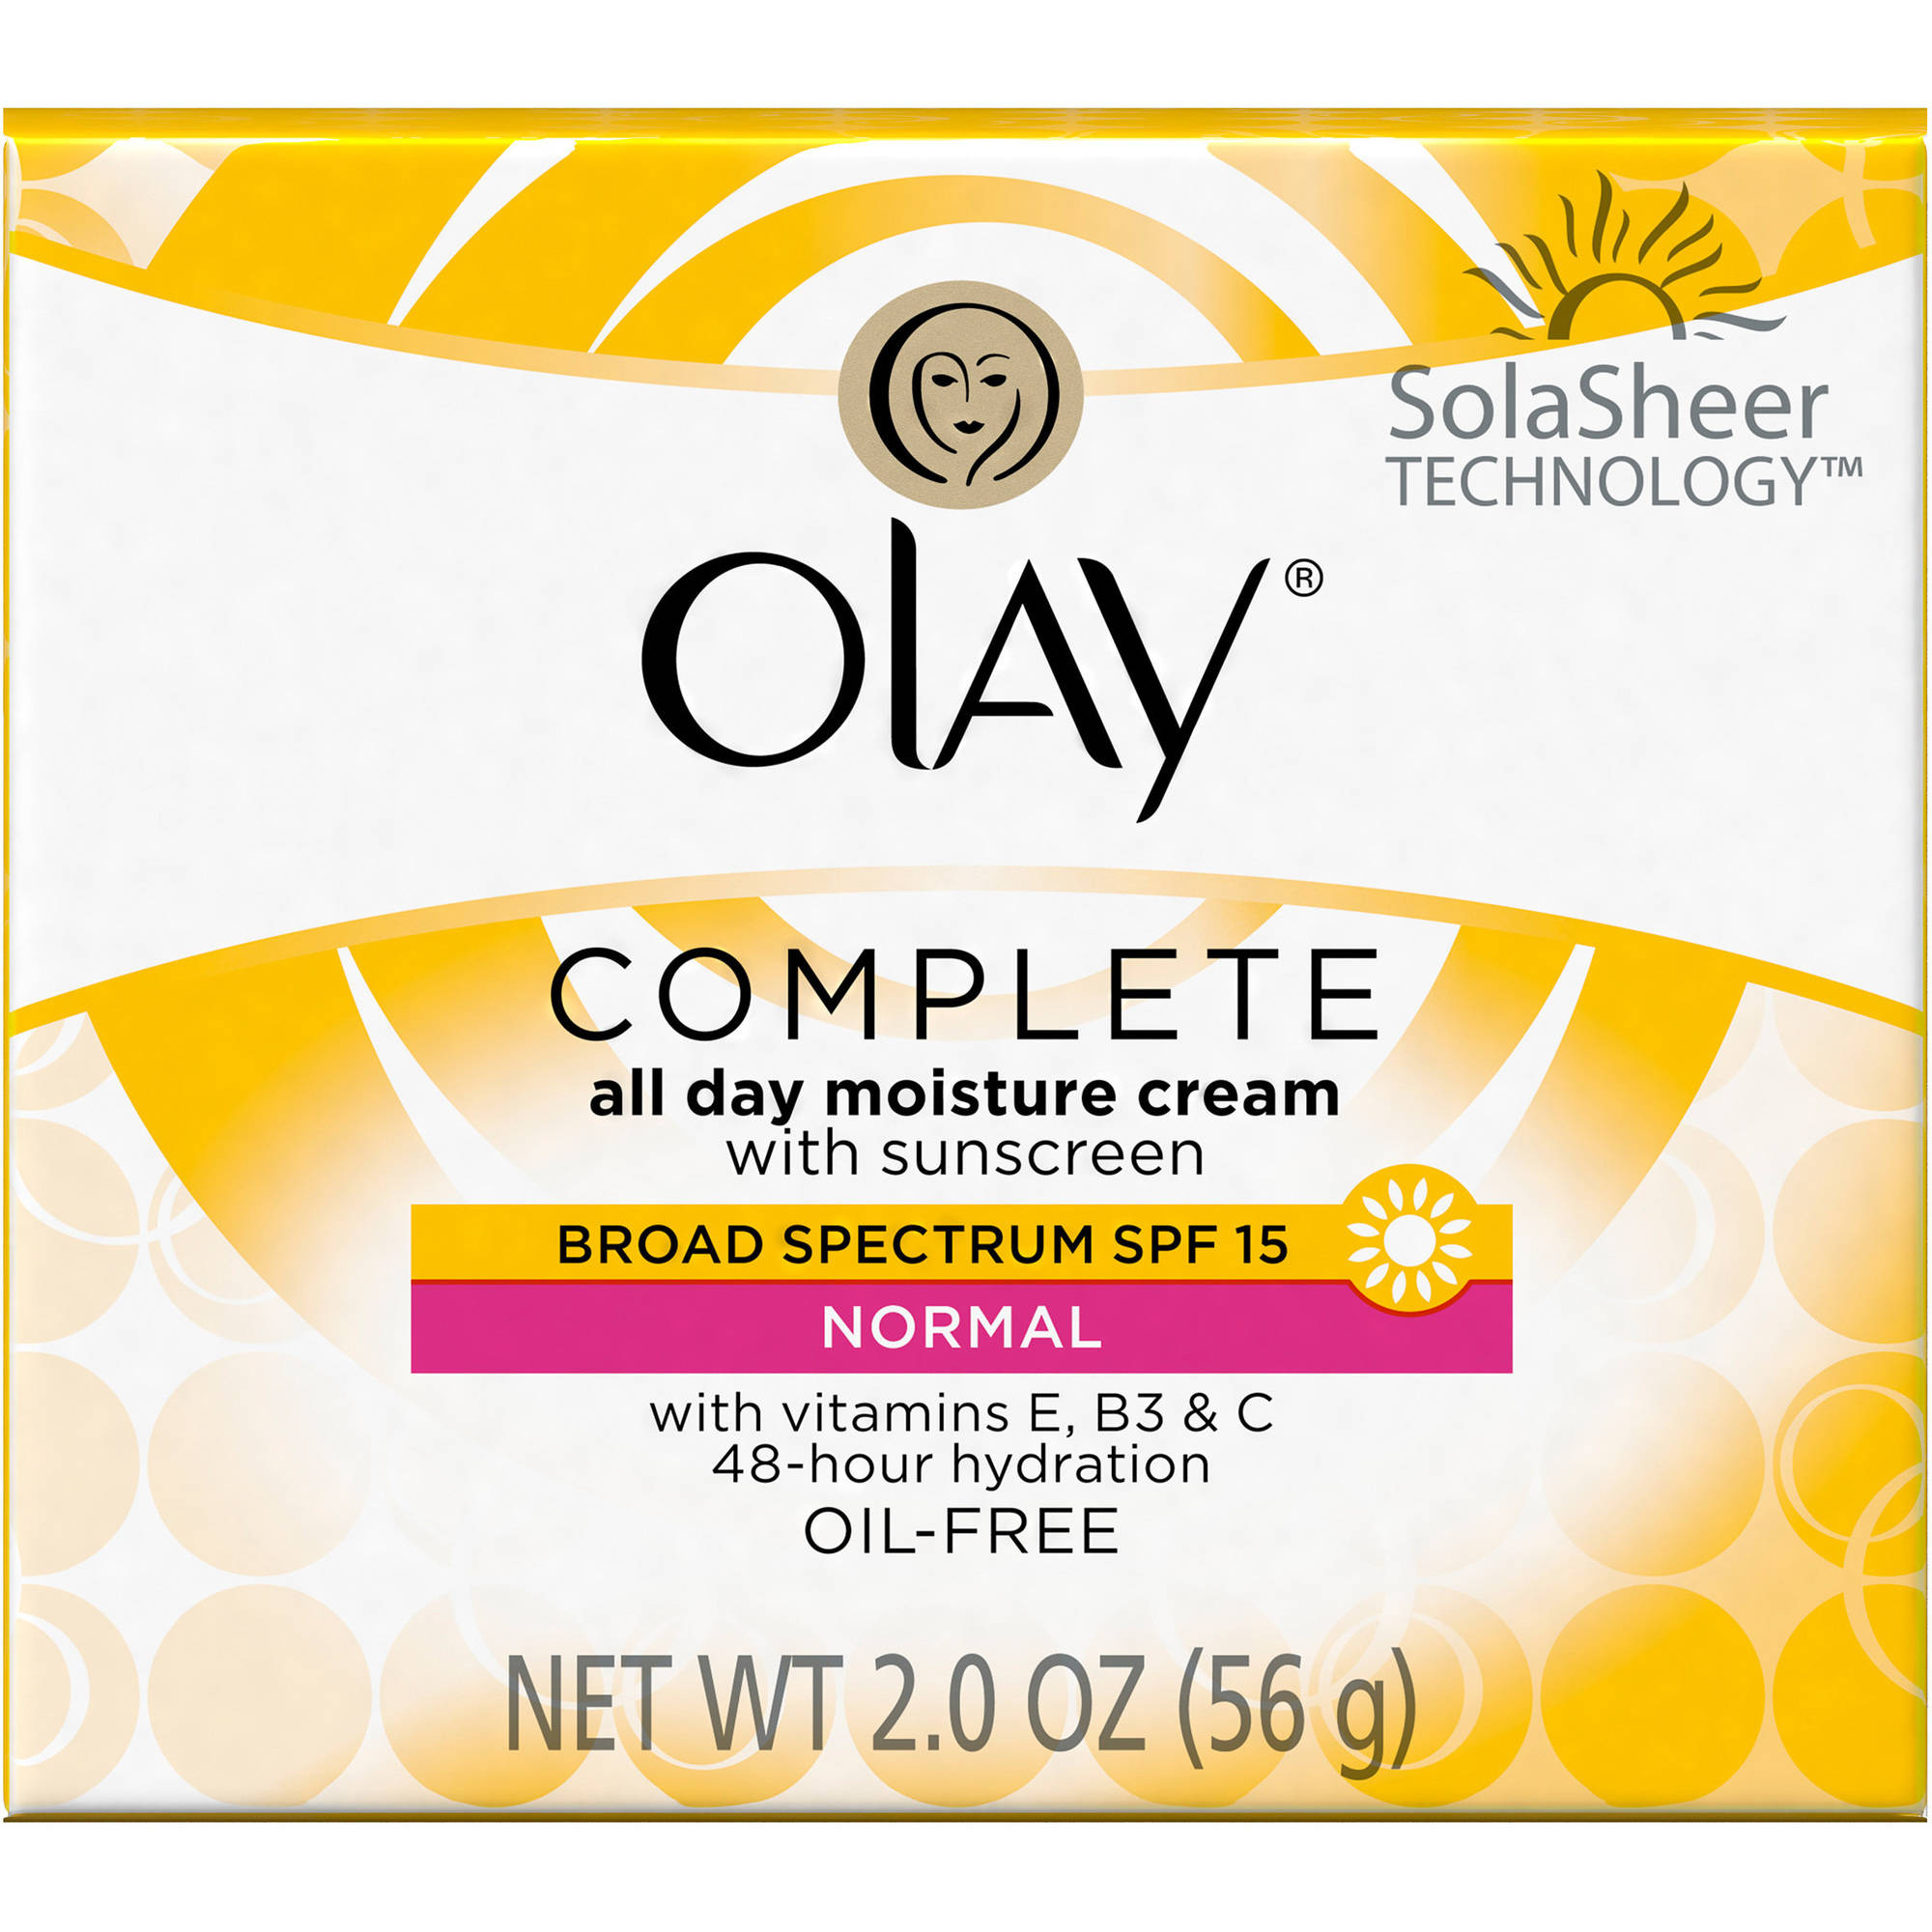 Olay Complete All Day Facial Moisturizer Cream With Sunscreen Broad Spectrum SPF 15 Normal 2.0 Oz